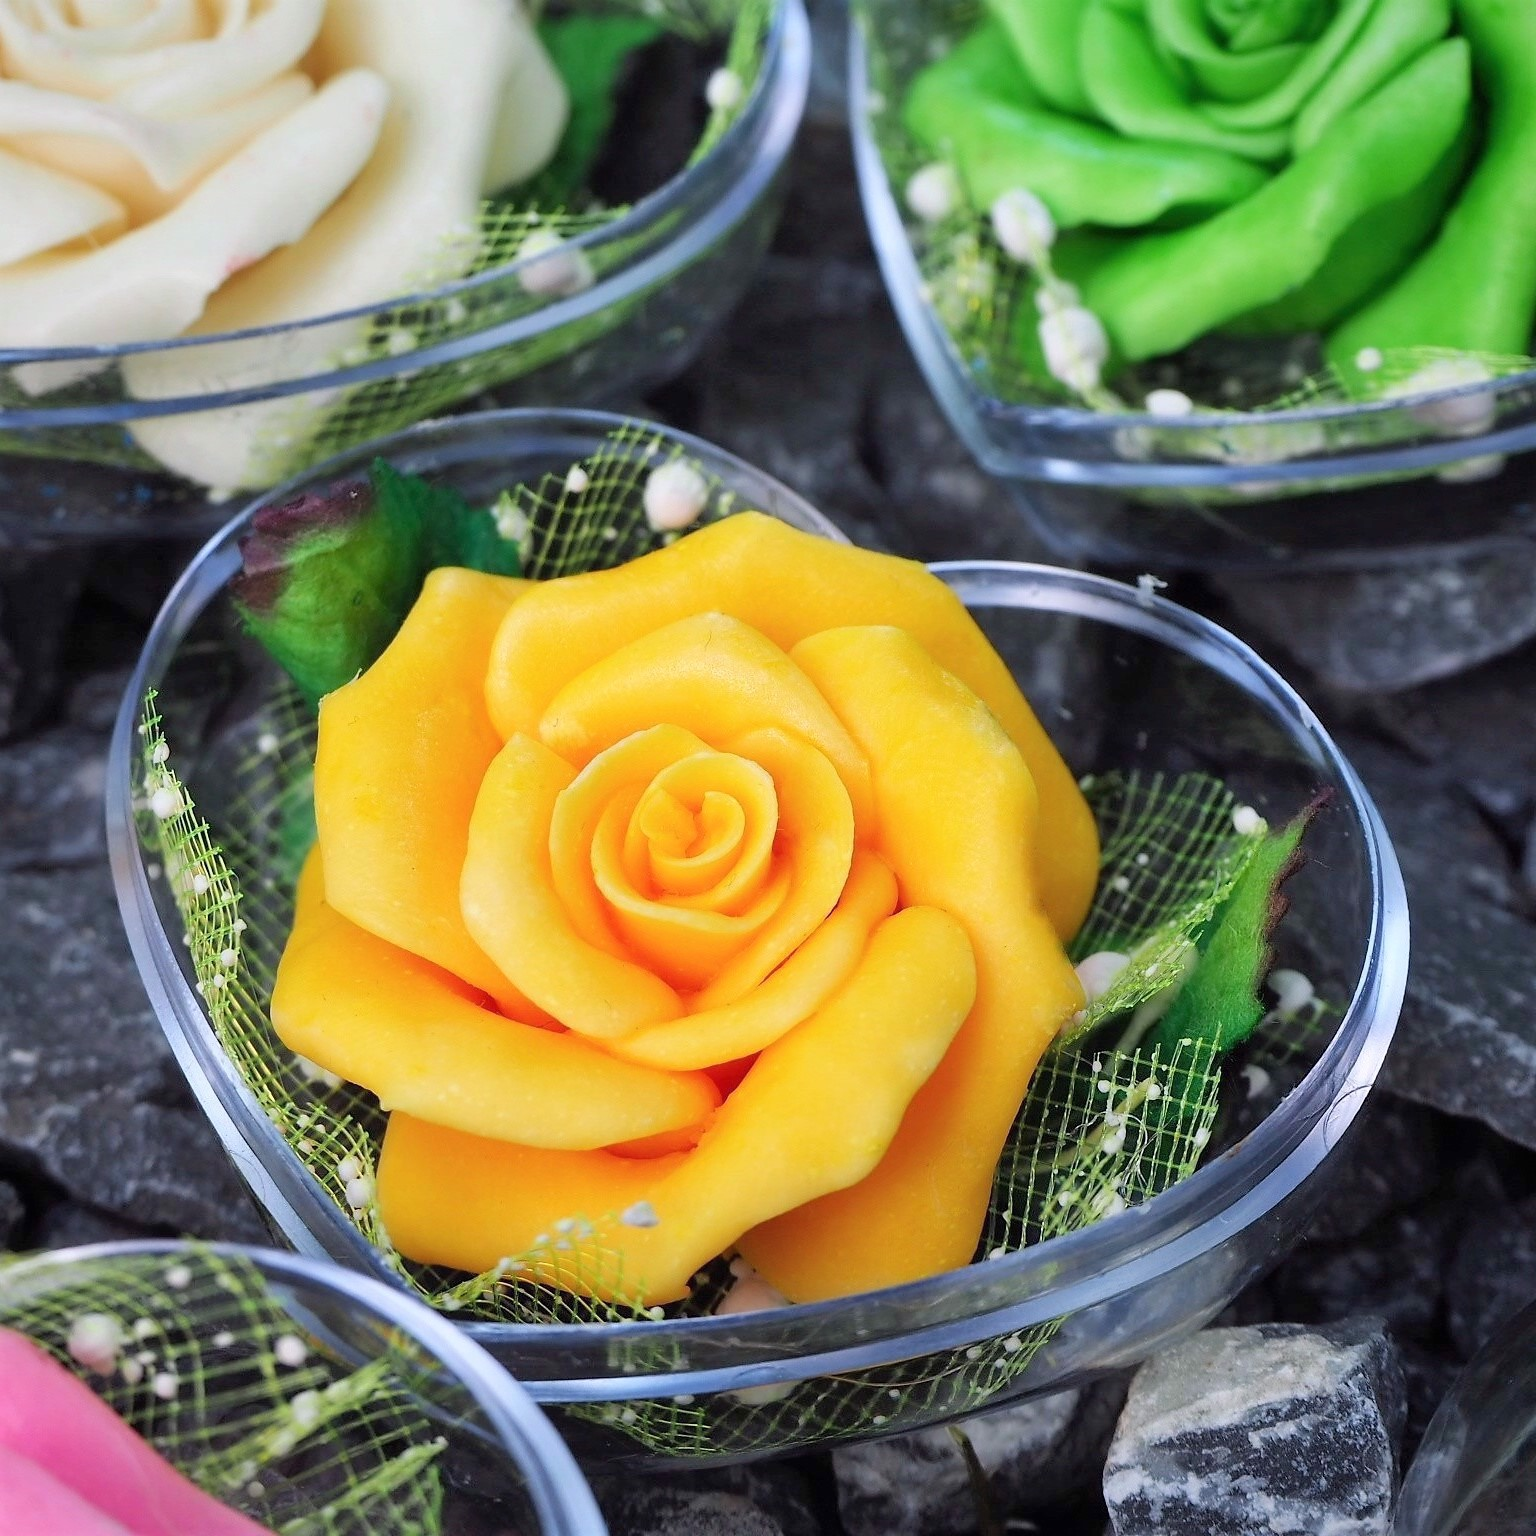 Picture of Wedding Favors Pack of Colorful Rose Flower Soap Carving, Rose Aroma Essential Oil, Handmade by Artisan, Personalized Message